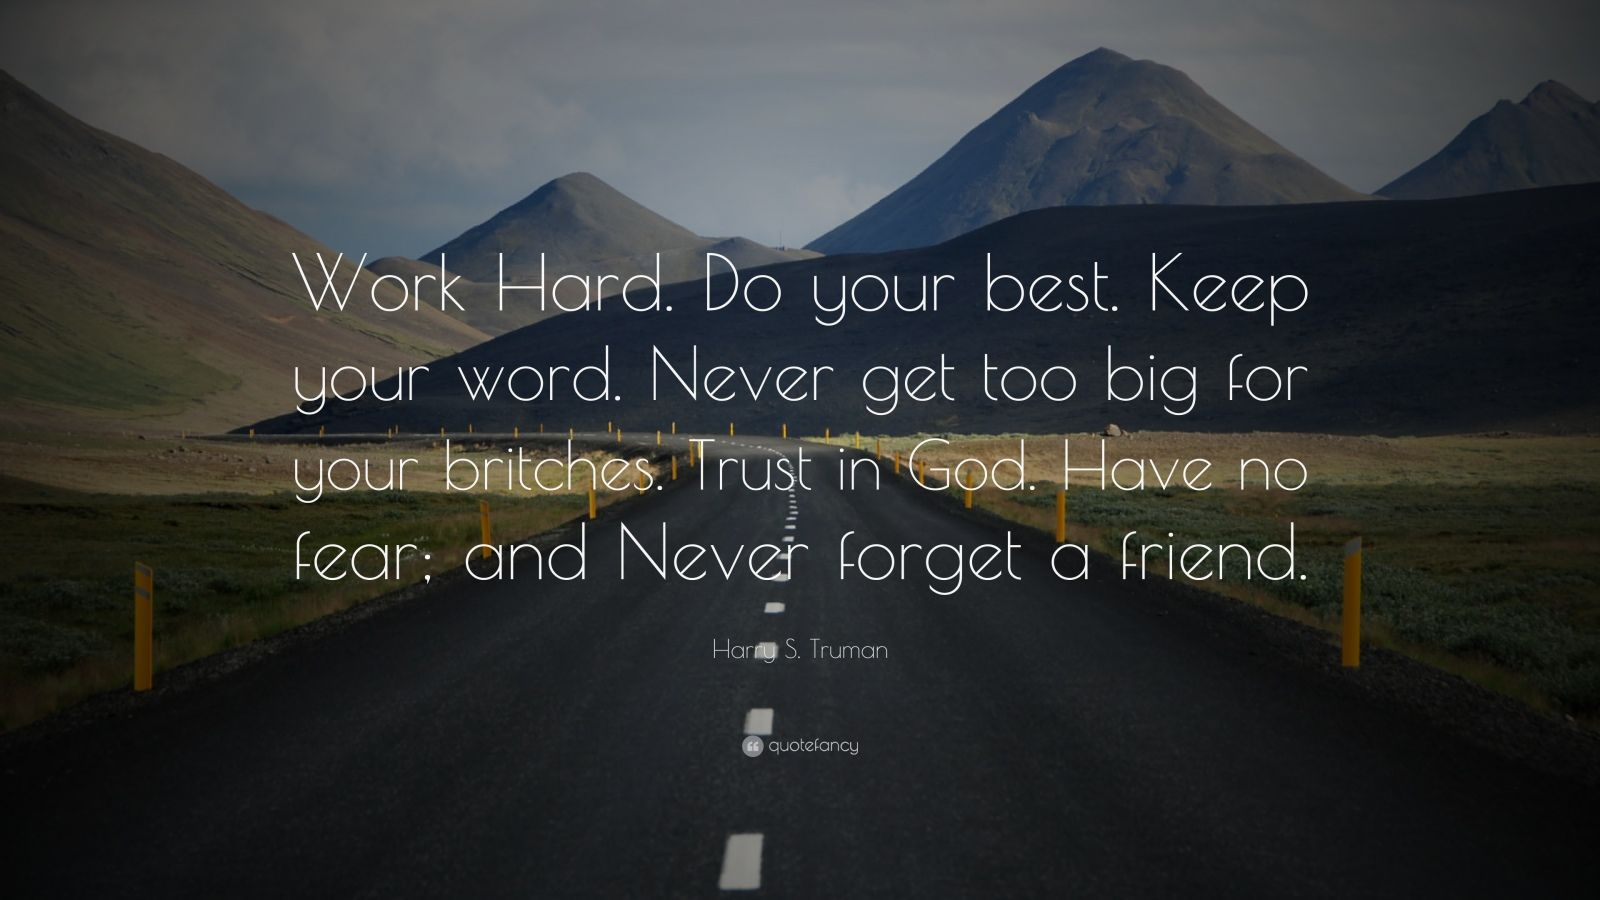 "Harry S. Truman Quote: ""Work Hard. Do your best. Keep your word. Never get too big for your britches. Trust in God. Have no fear; and Never forget a friend."""